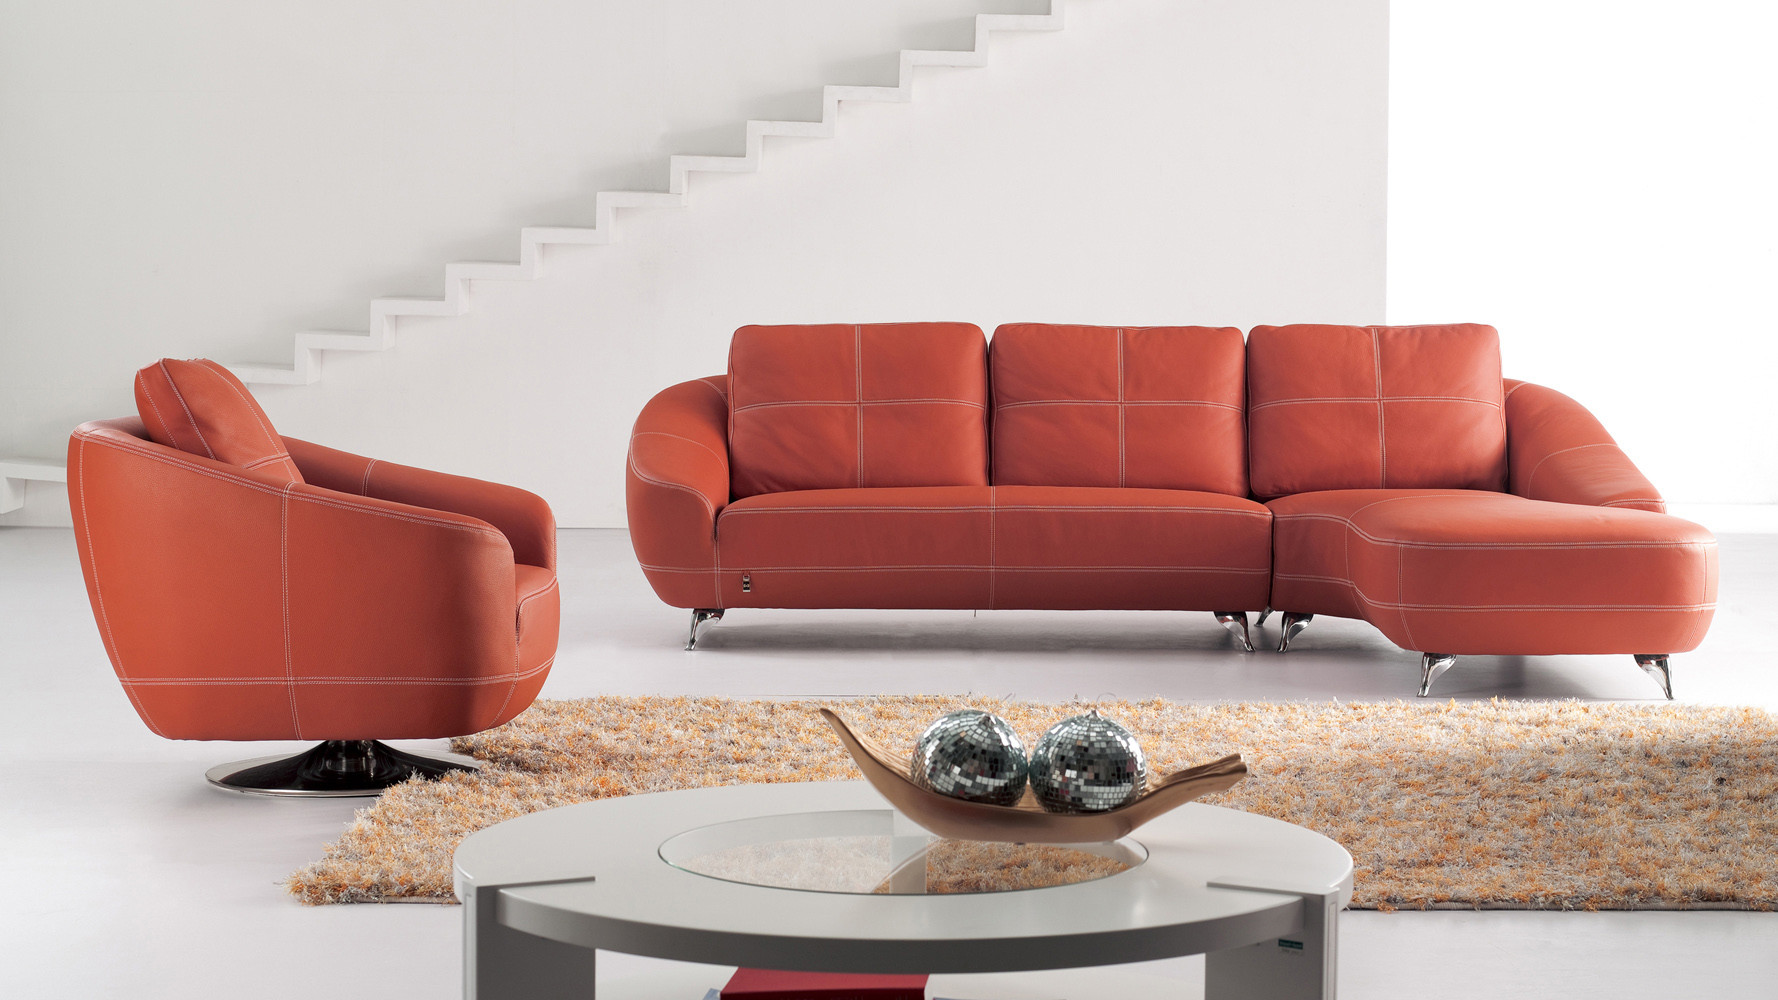 Best ideas about Orange Leather Sofa . Save or Pin Orange Lucy Leather Sectional Sofa Now.